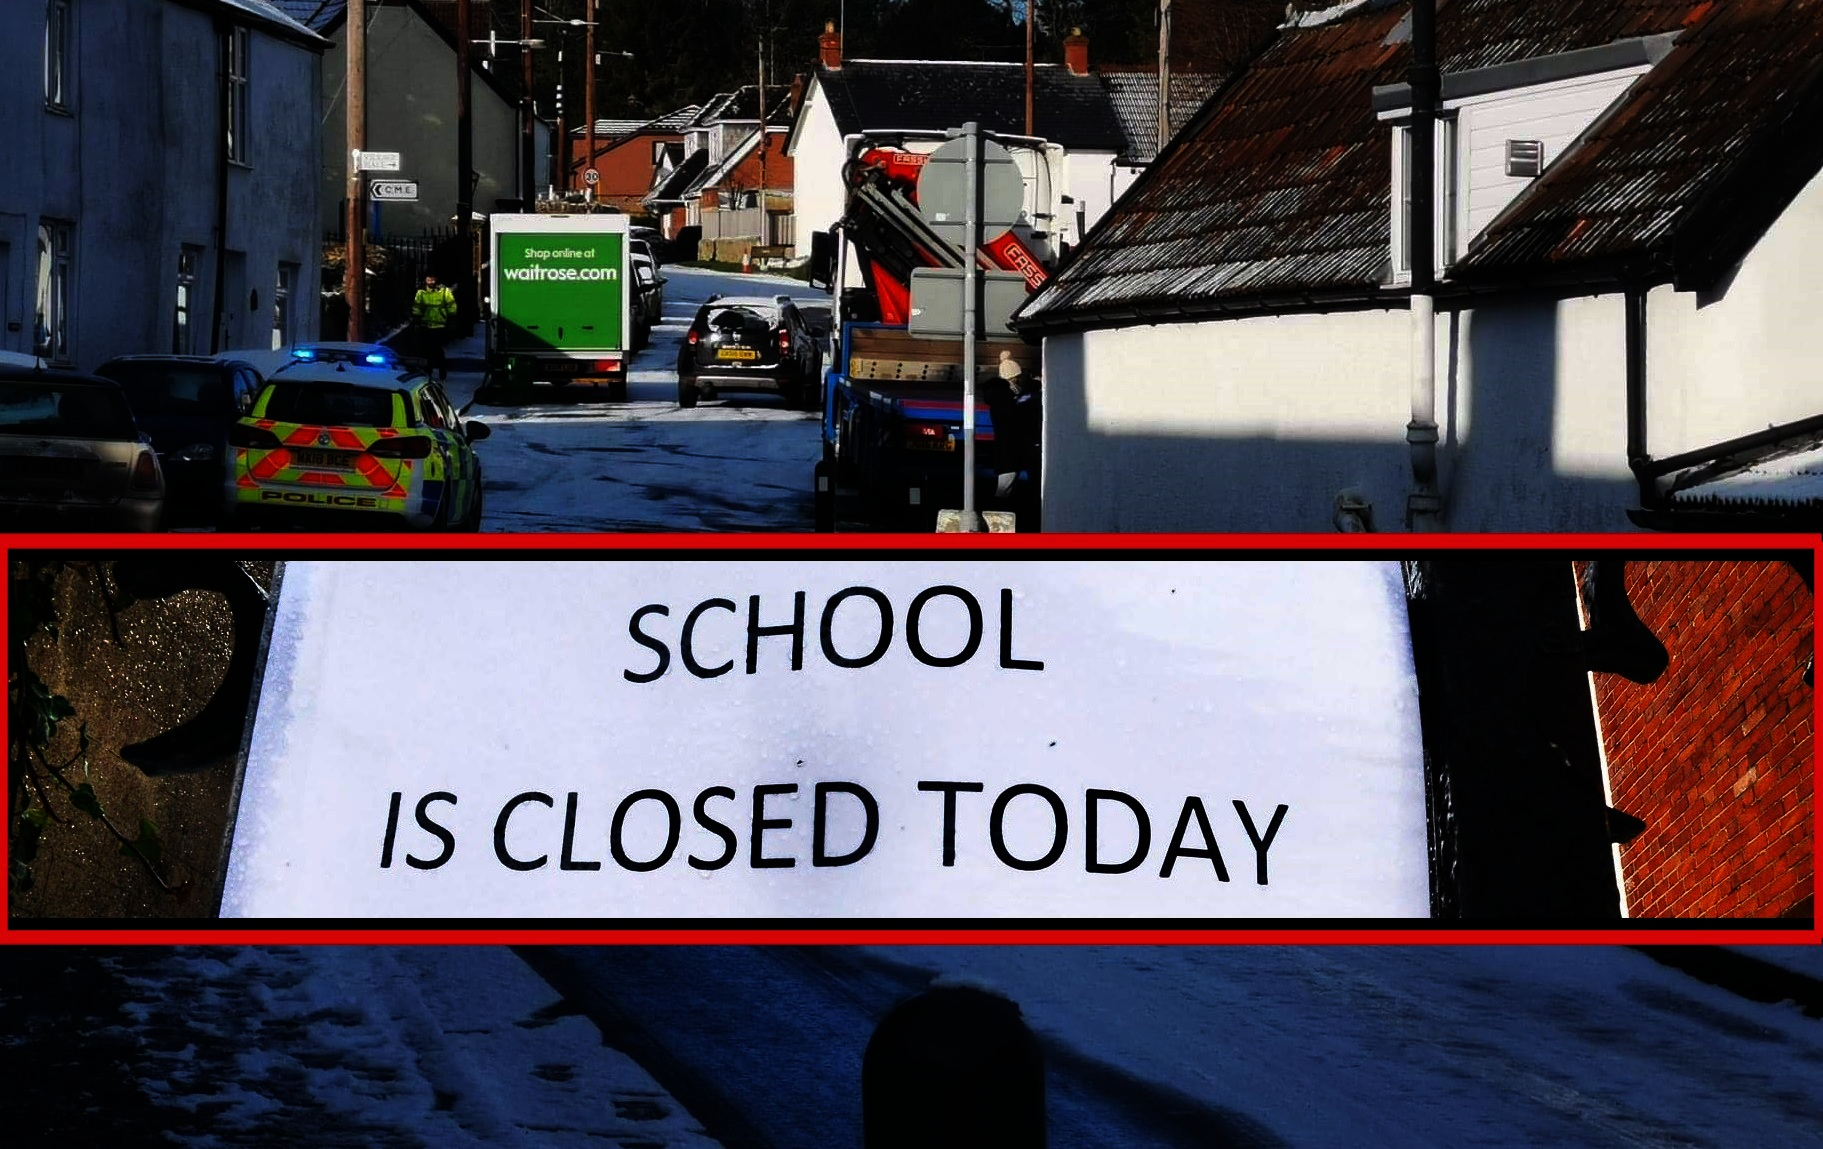 CLOSED: Combe St Nicholas was the first school to close, and is now being followed by others across South Somerset